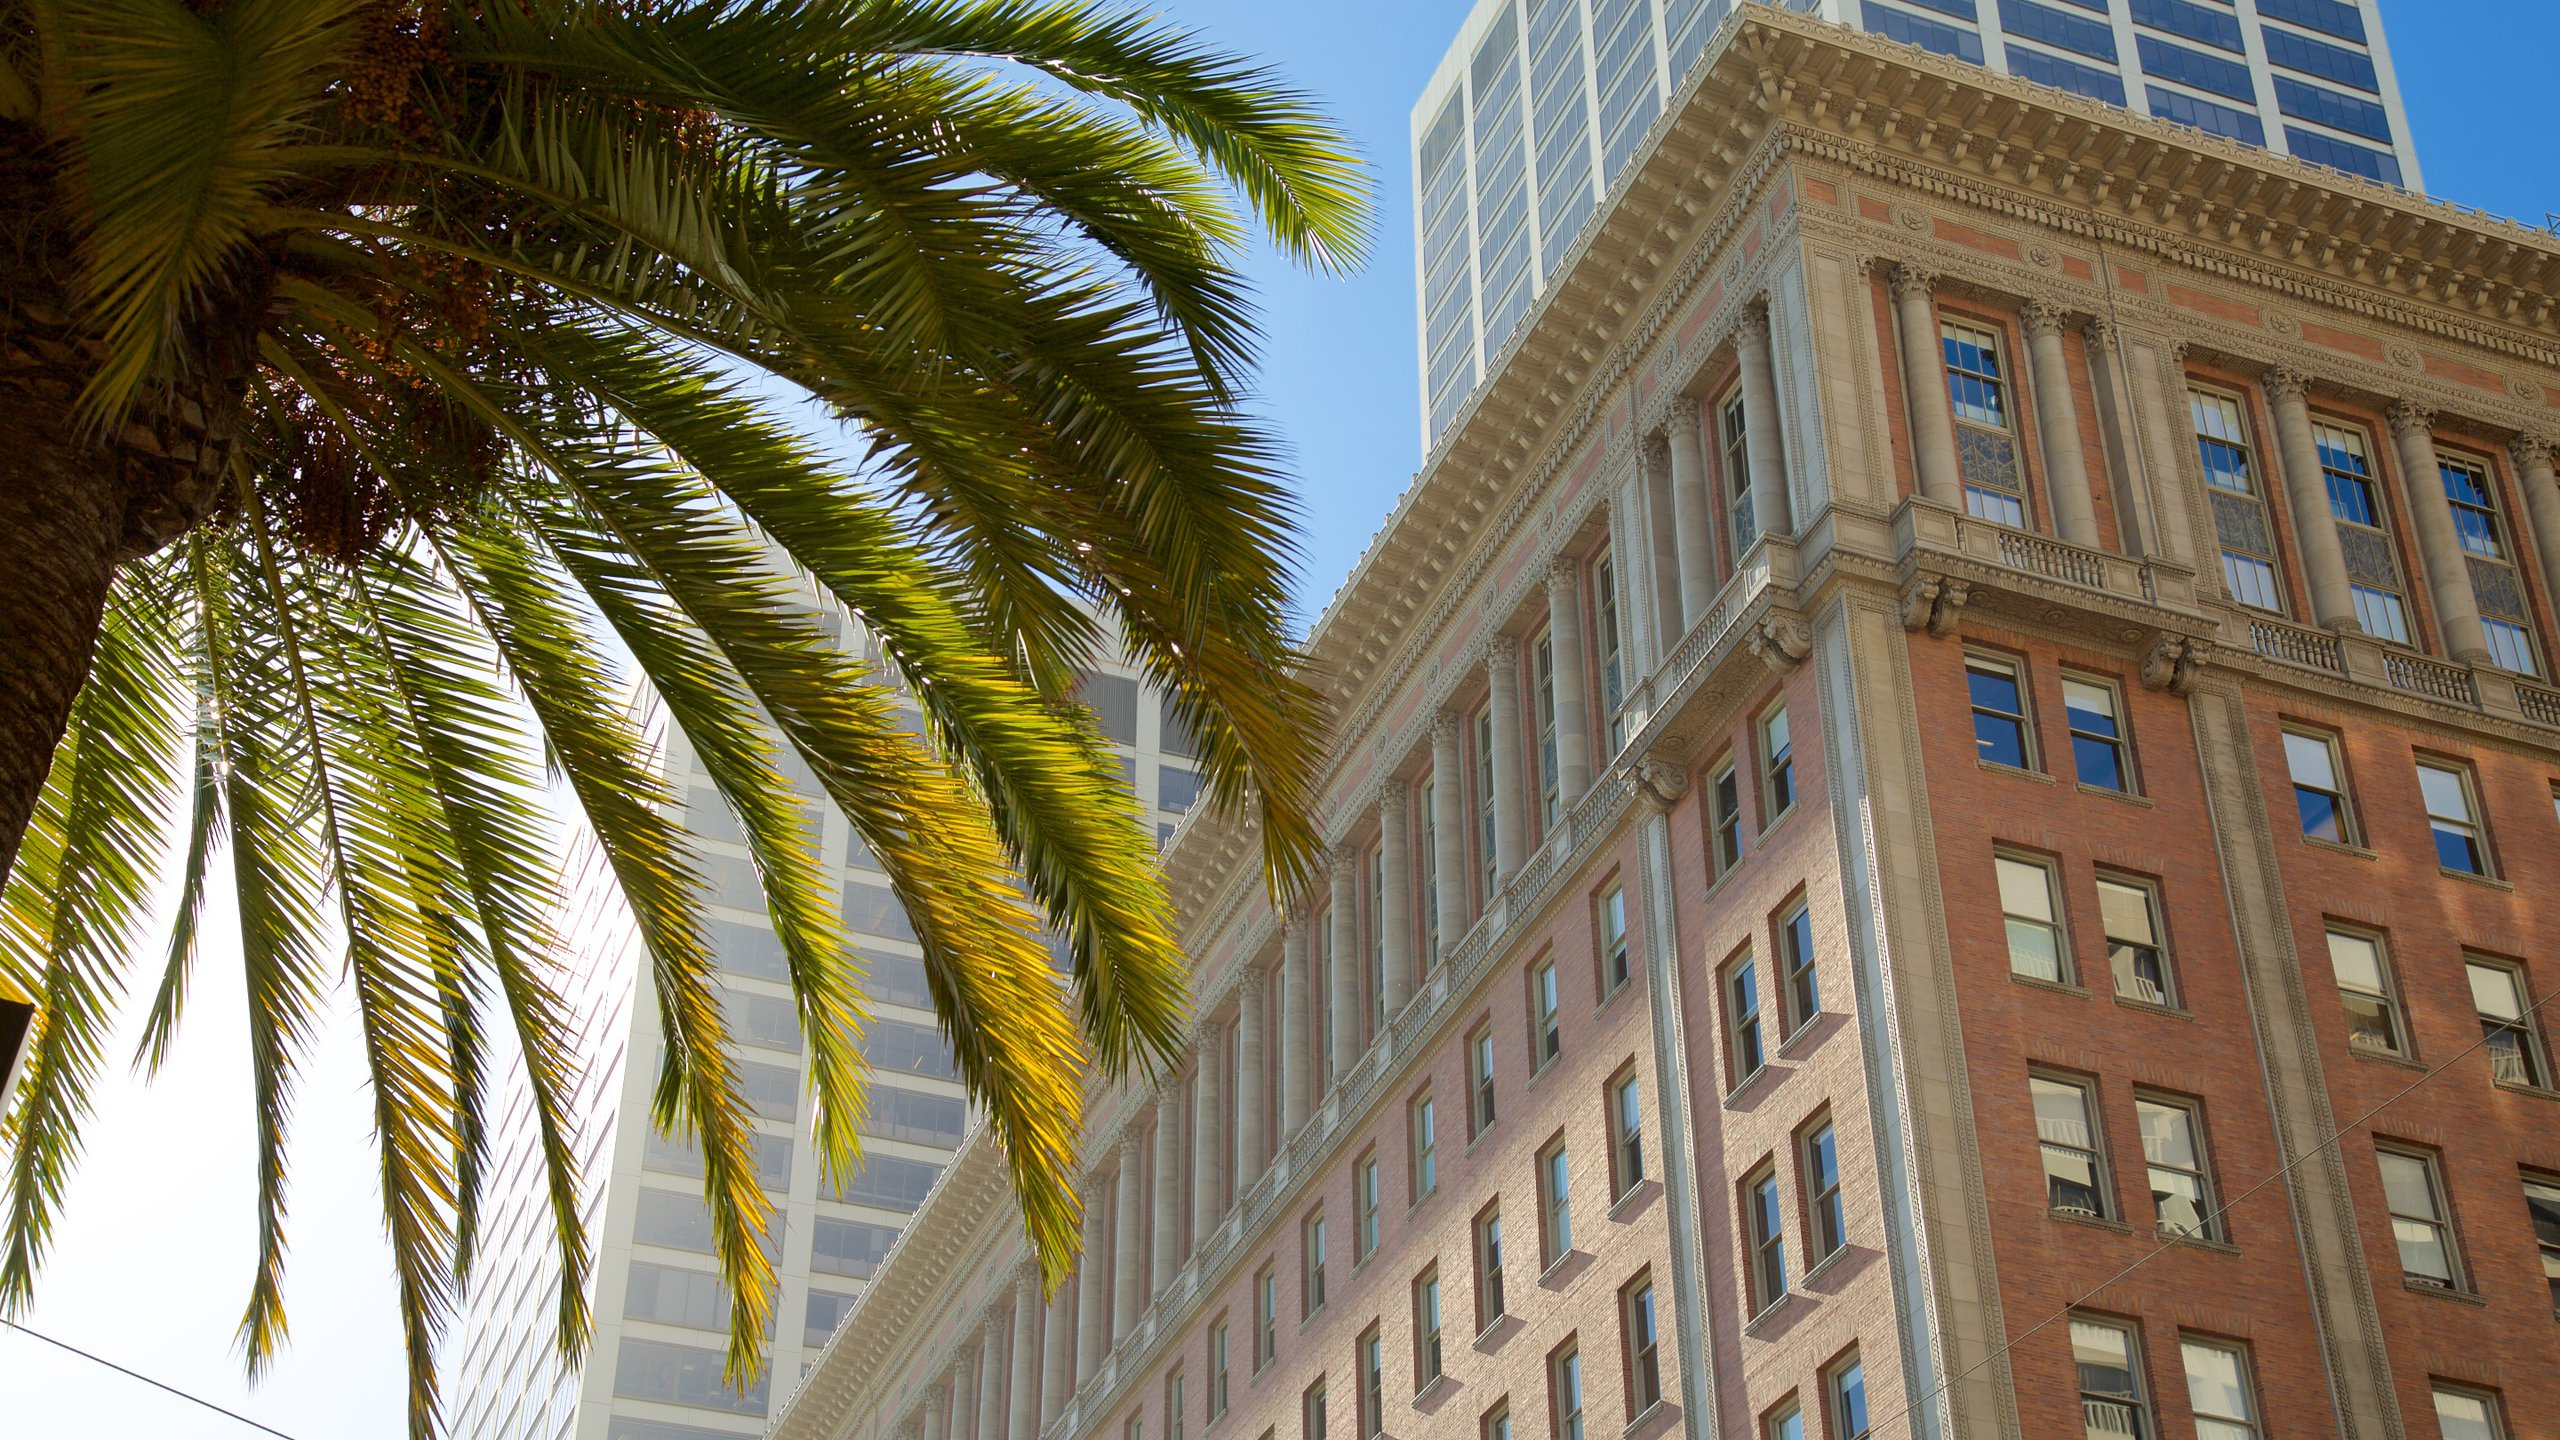 The 10 Best Hotels in Embarcadero, San Francisco $67 for 2019 | Expedia